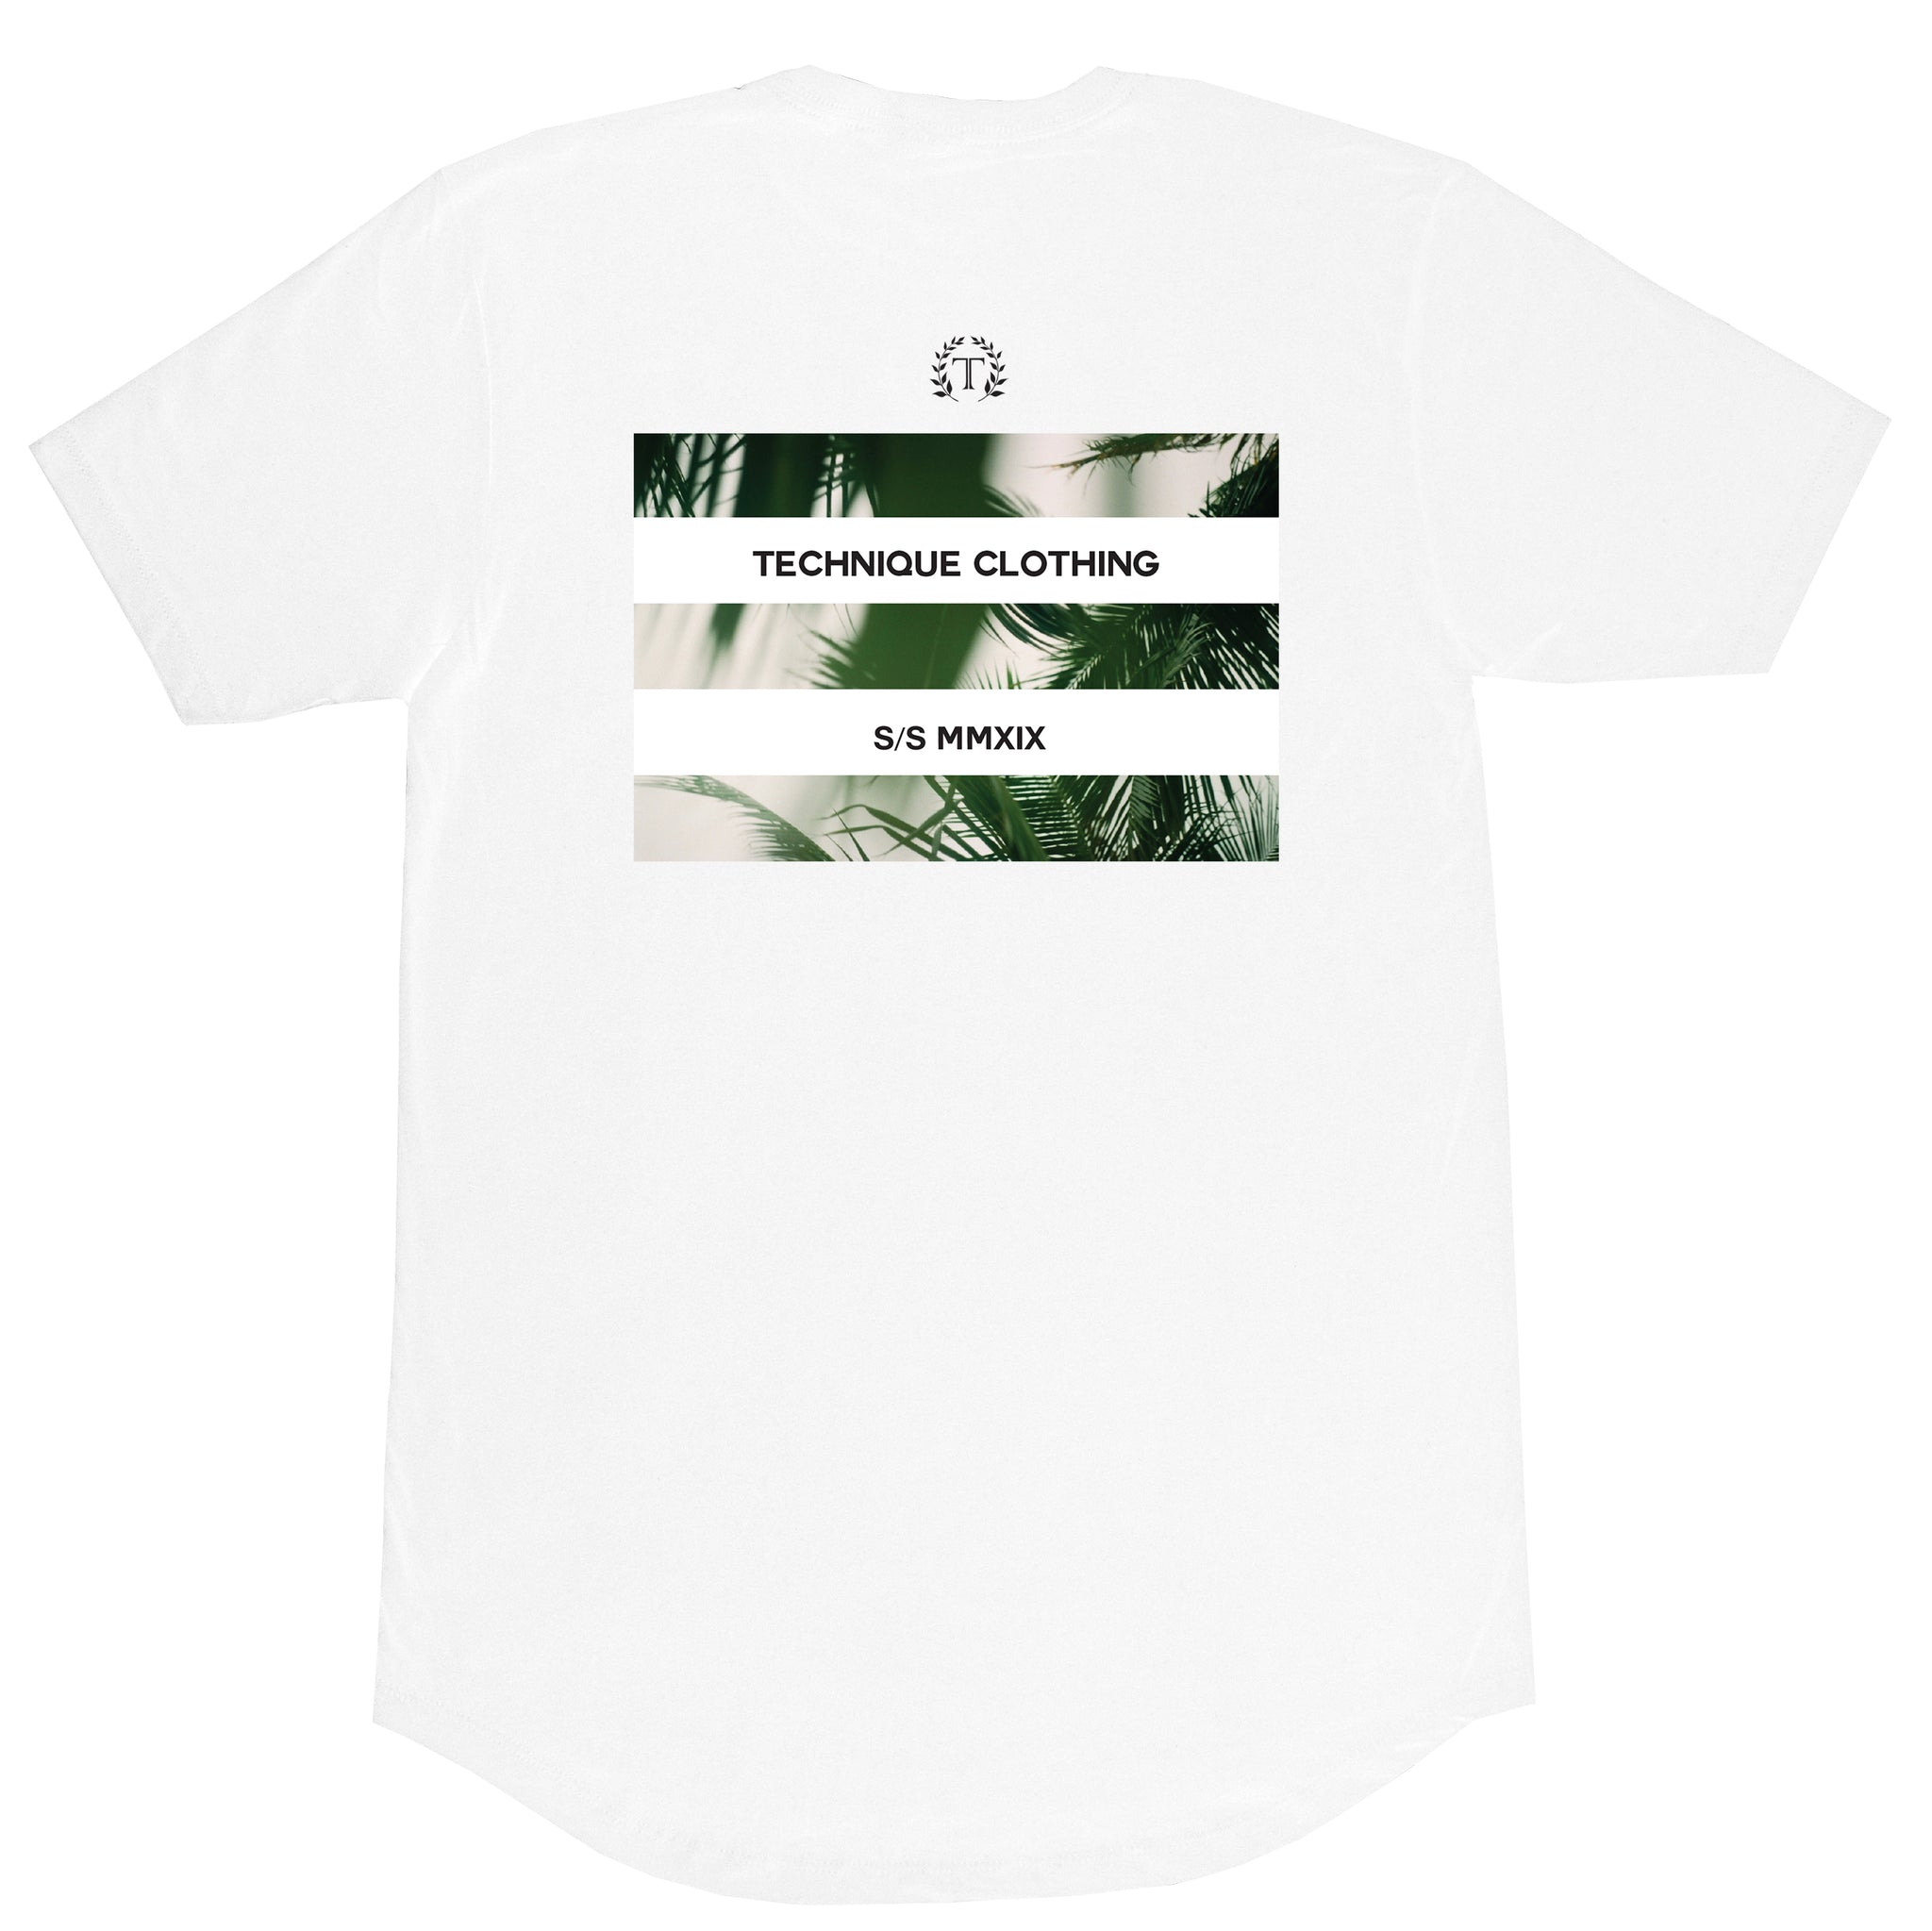 PALM TEE WHITE - Technique Clothing